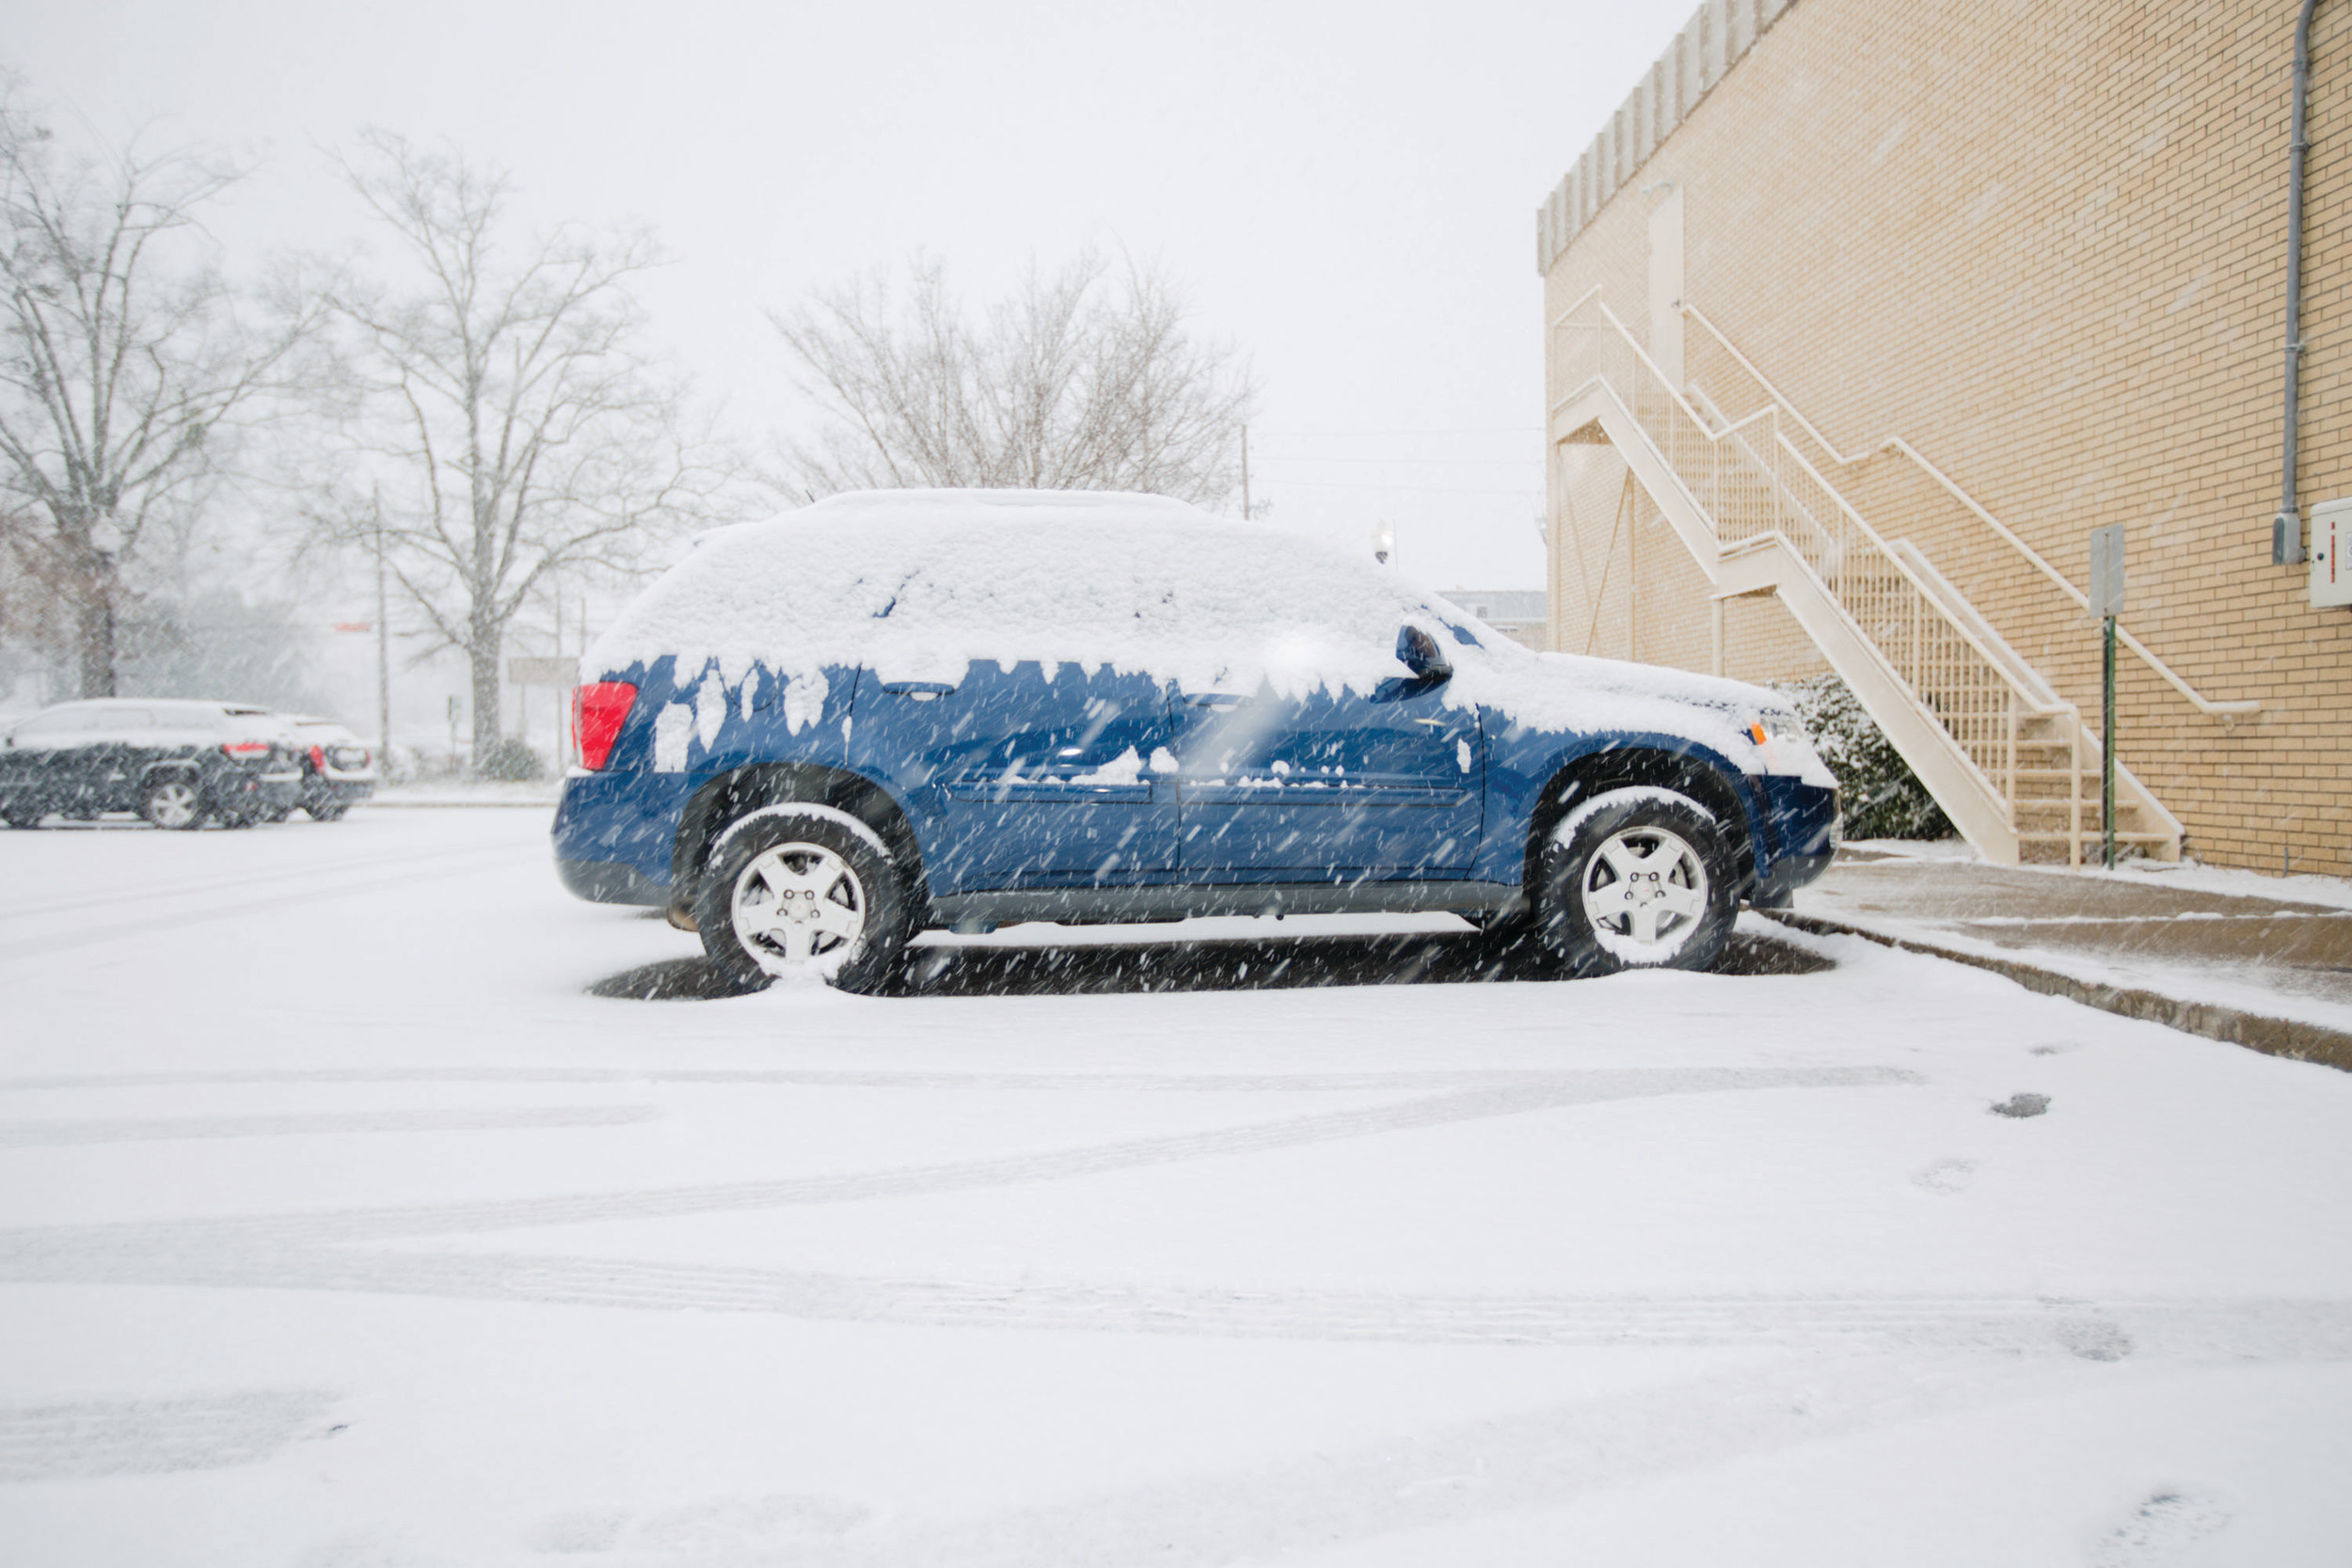 The Sumter Item's parking lot is seen during the snowfall.